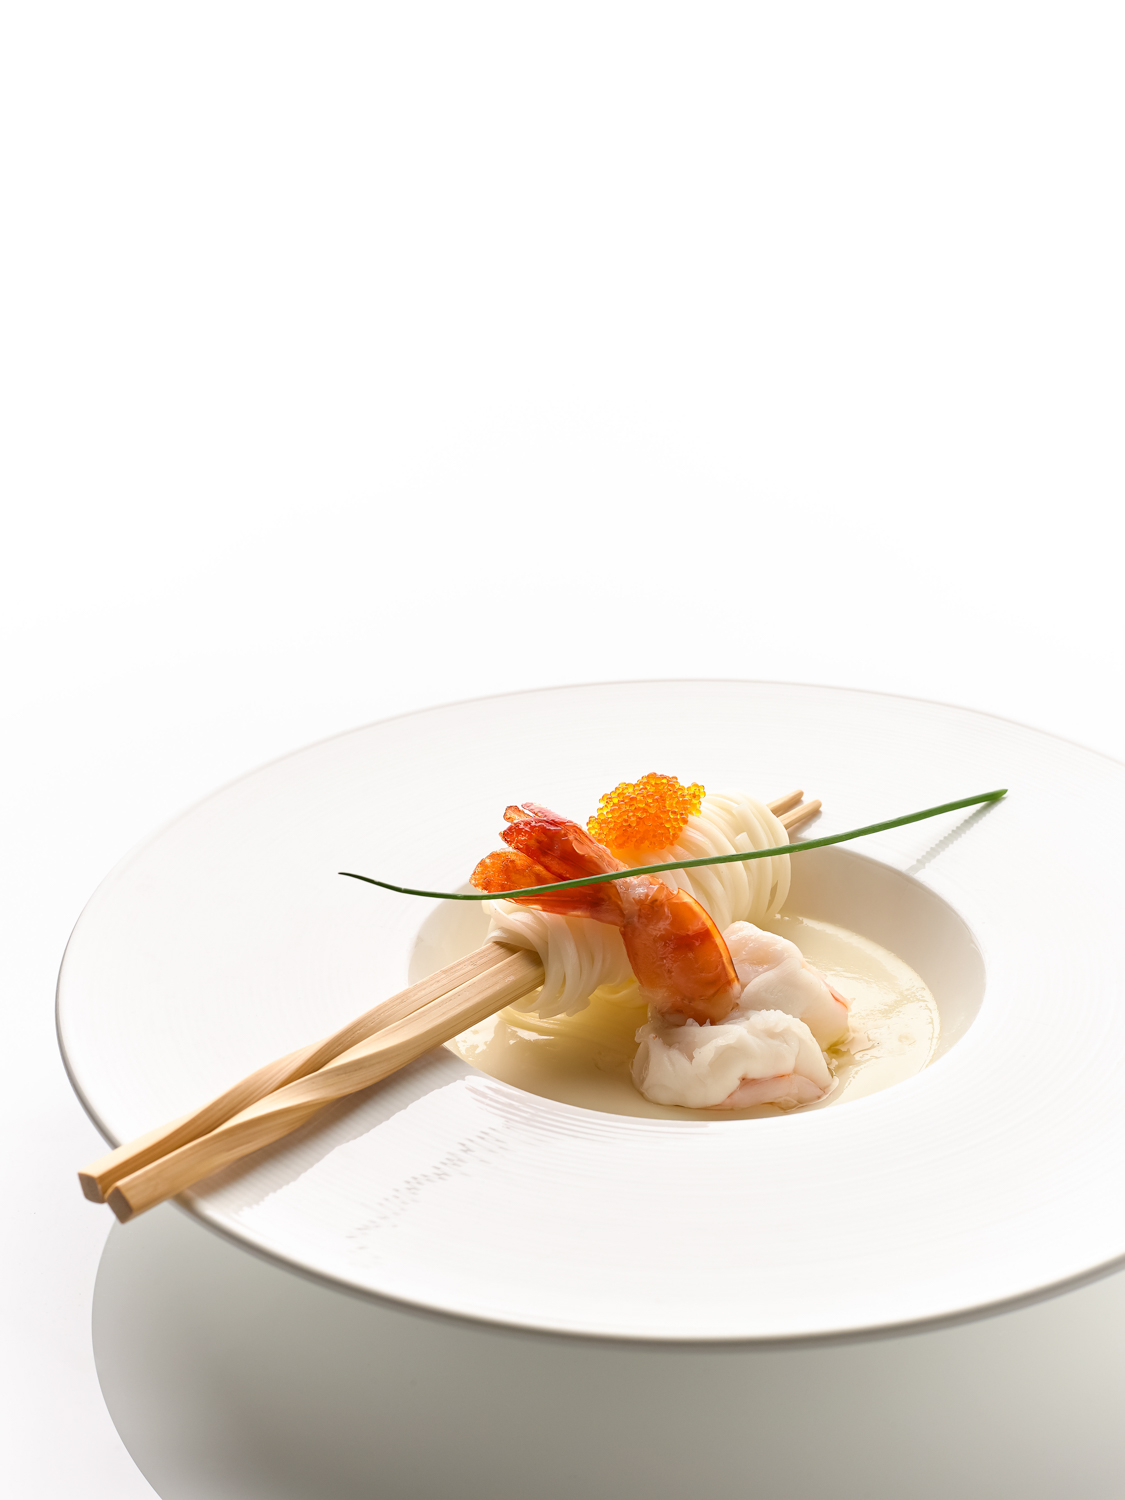 Steamed King Prawn with Inaniwa Udon in Egg White and Chinese Wine (花雕蛋白蒸大虾稻庭面)